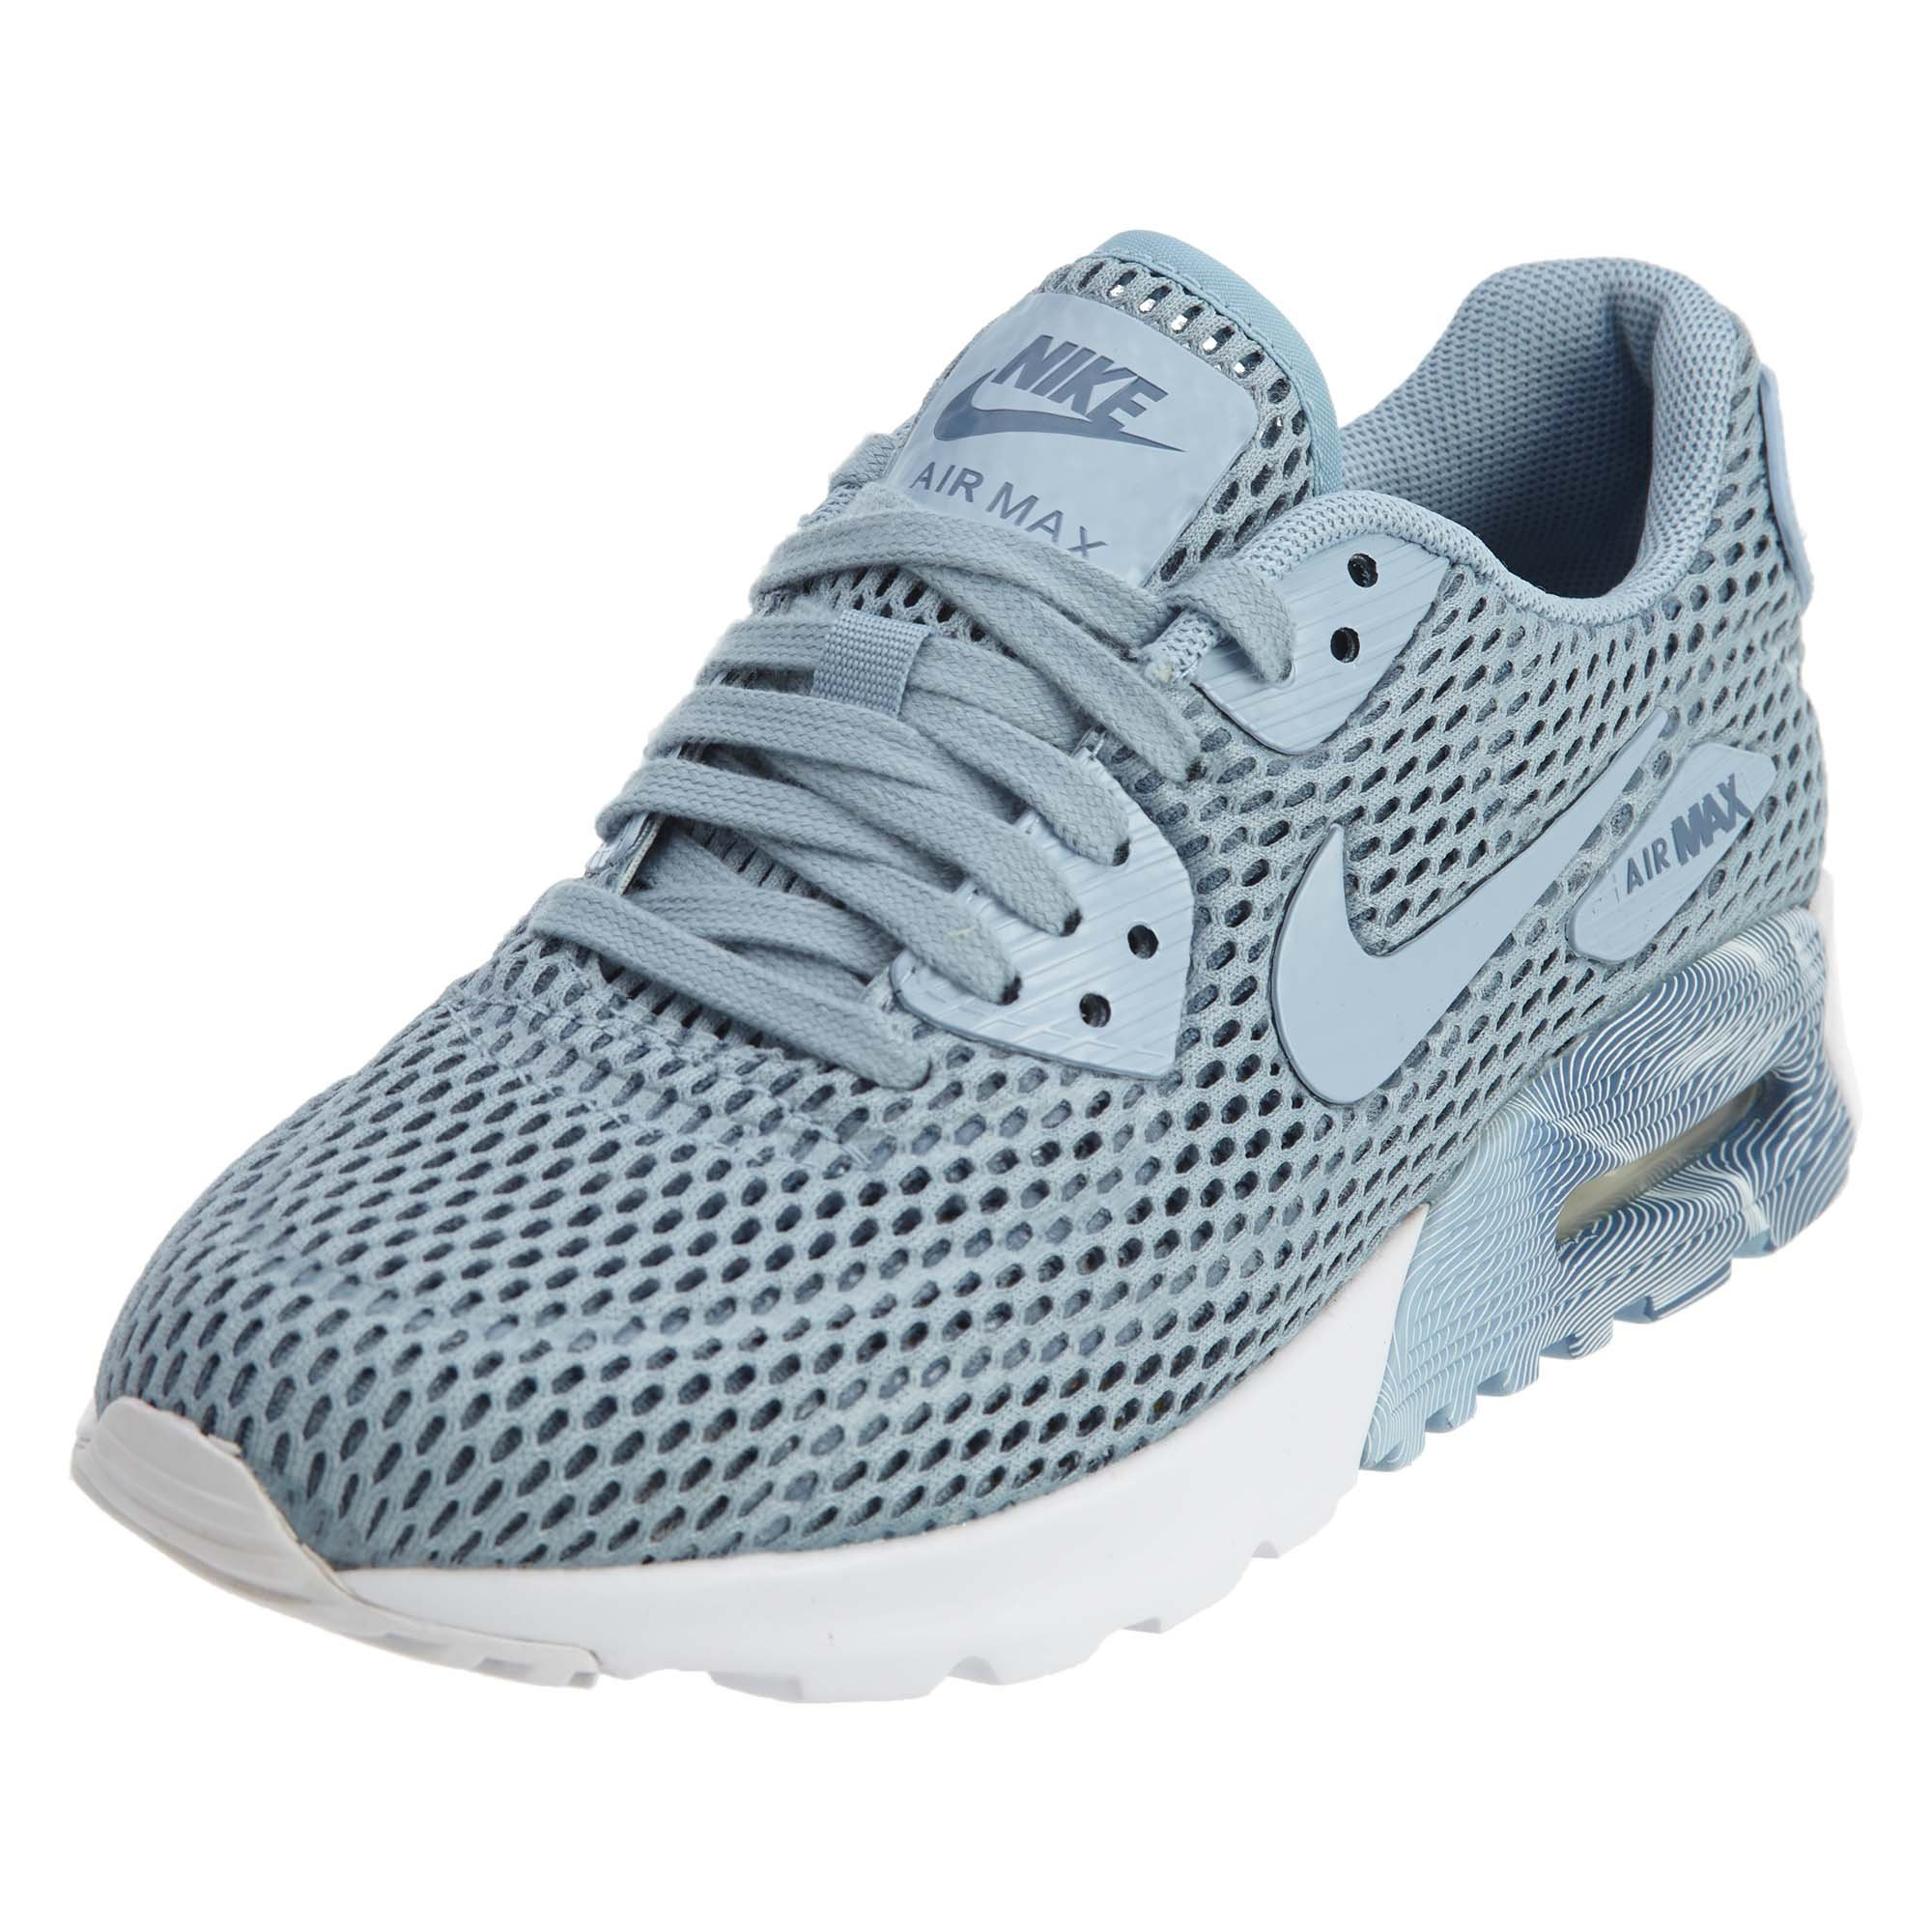 Nike Air Max 90 Ultra Br Womens Style : 725061-402 Size : 7.5 B(M) US by NIKE